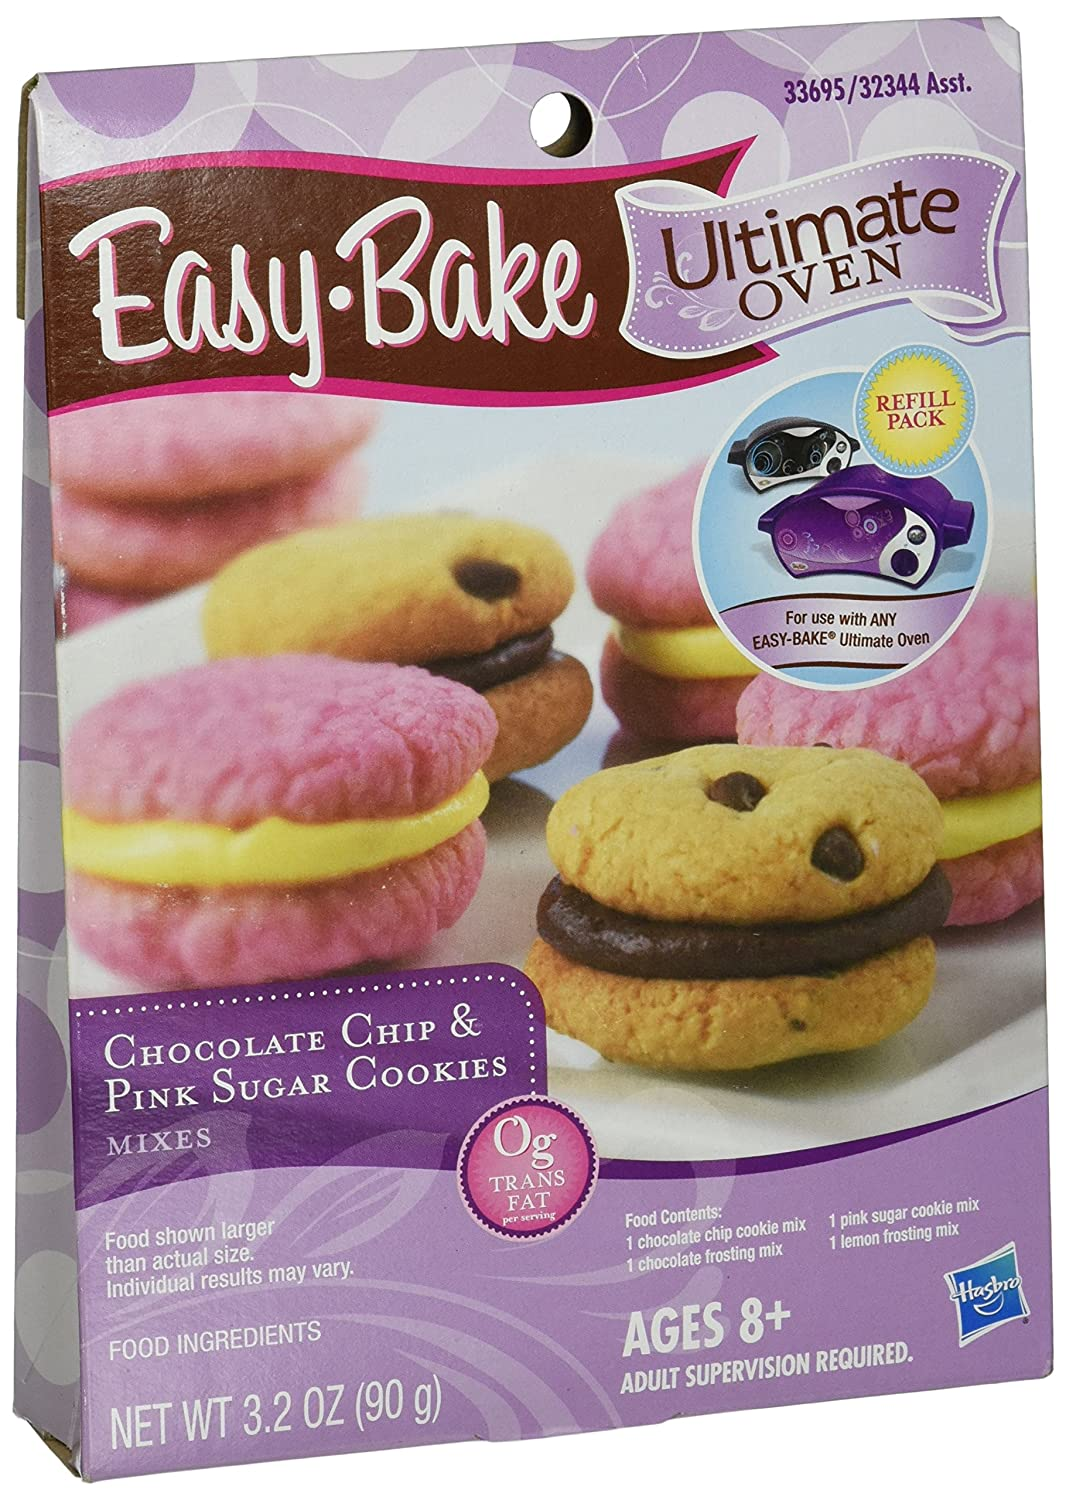 Easy-Bake Ultimate Oven Chocolate Chip and Pink Sugar Cookies Refill Pack, 3.2 oz